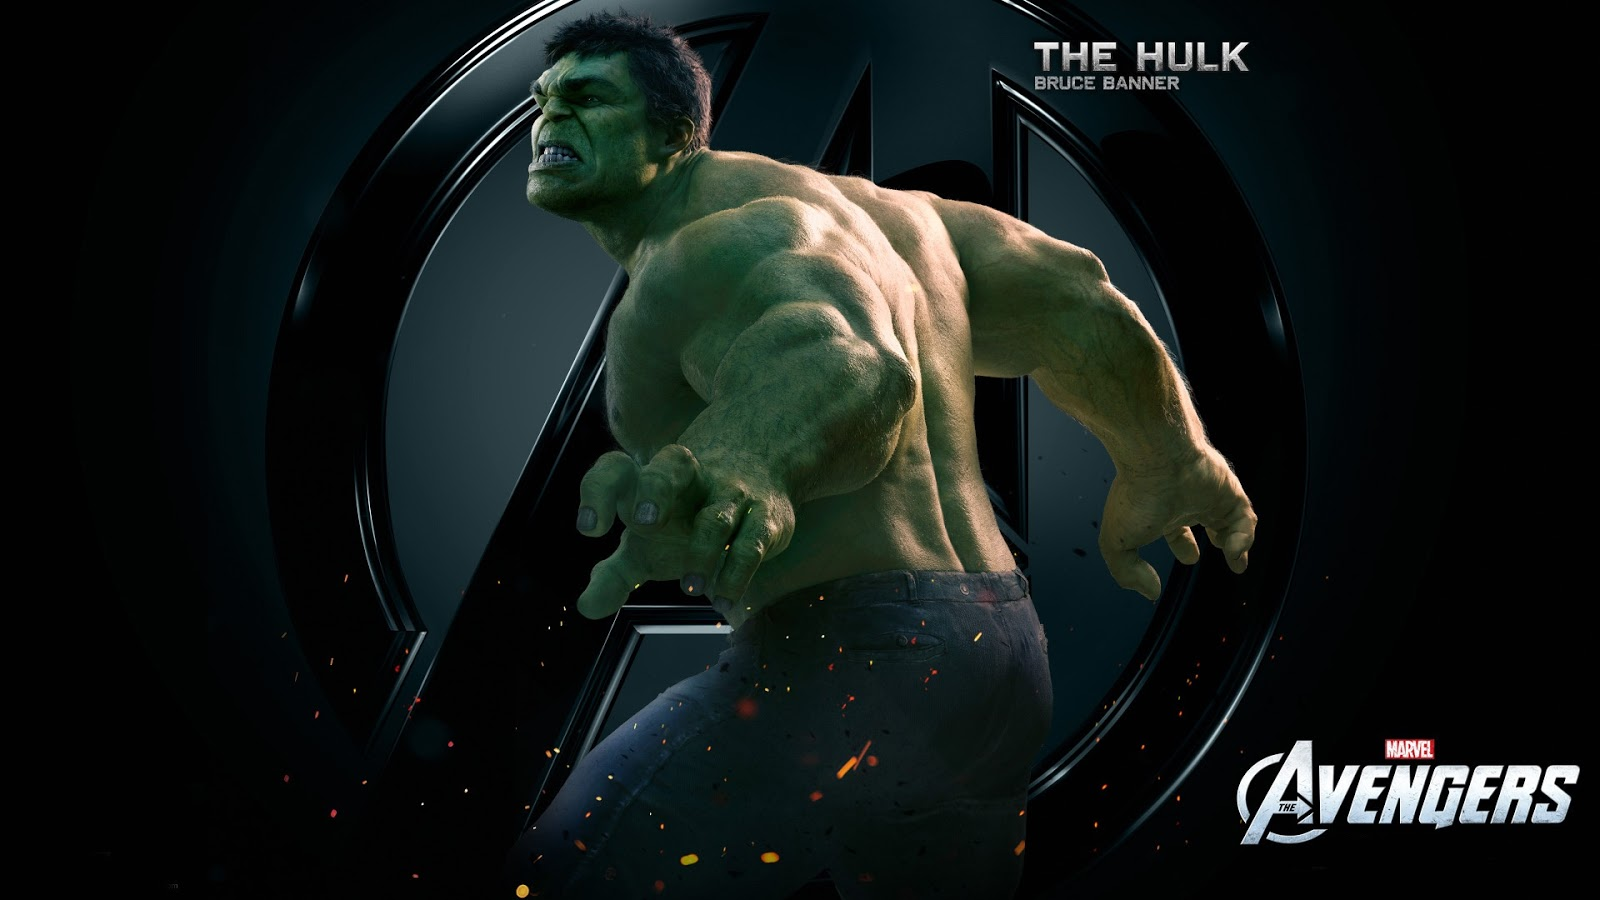 The Hulk Bruce Banner Avengers Wallpaper